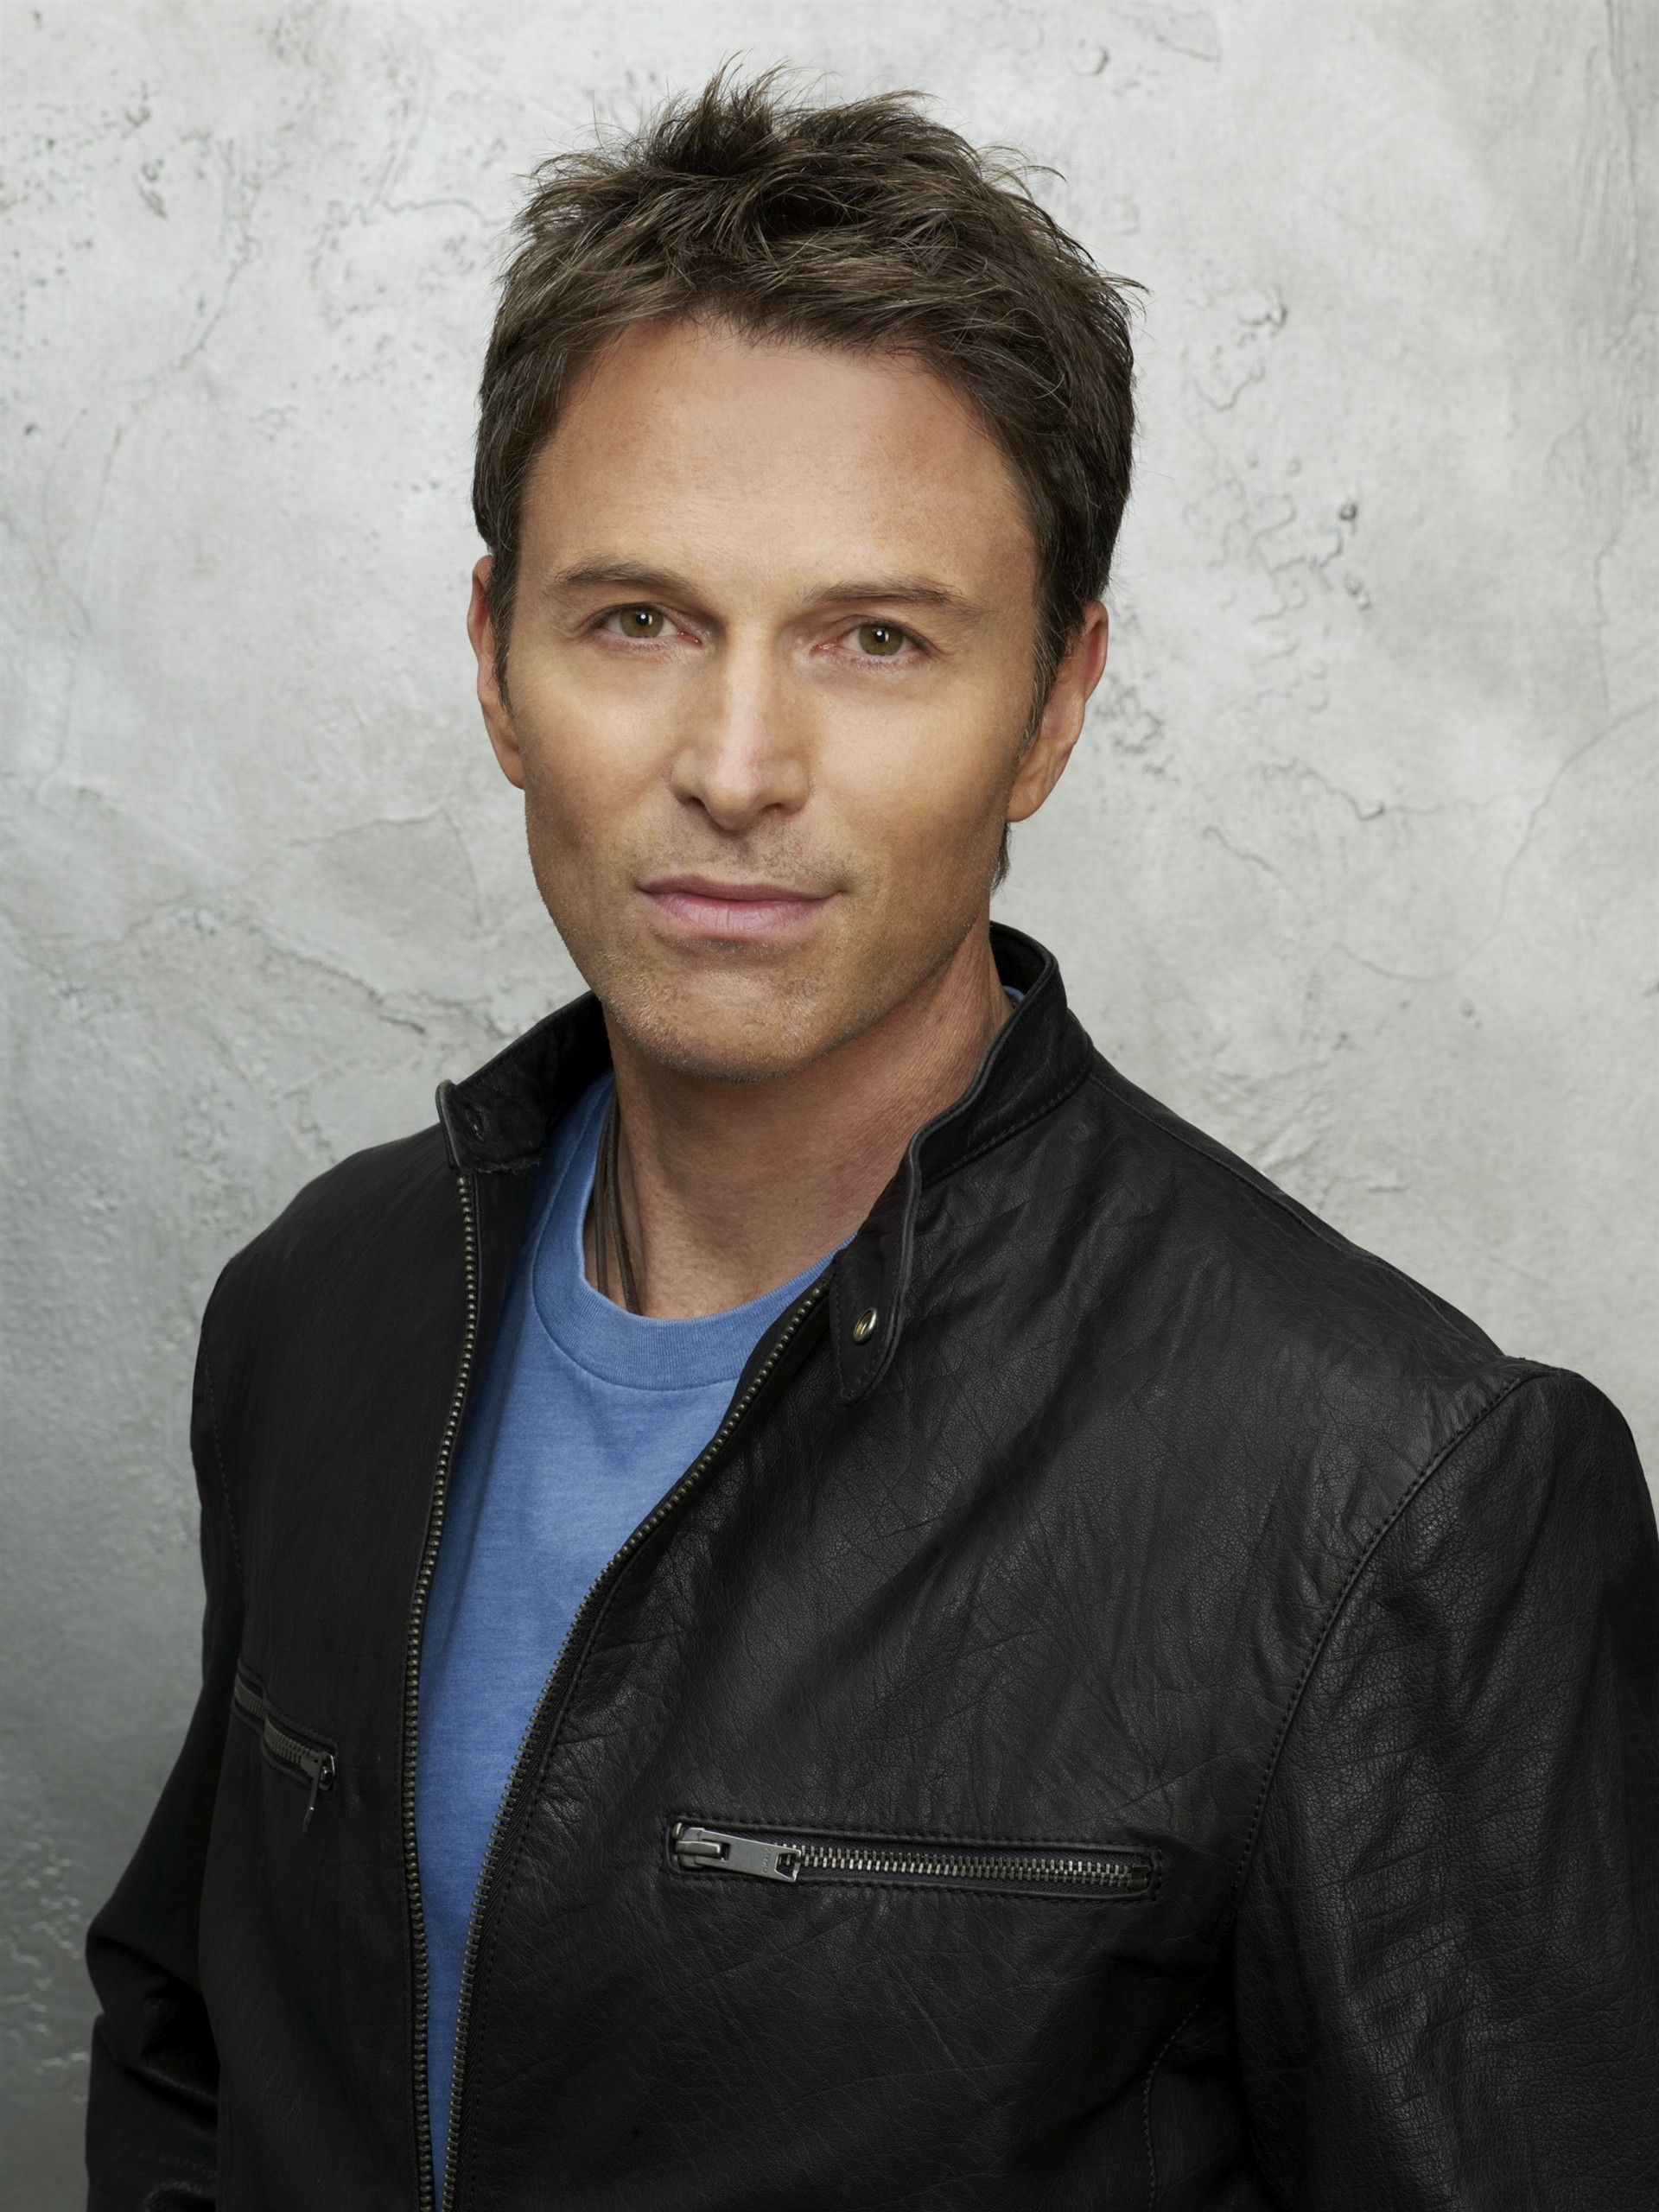 tim daly kevin conroytim daly superman, tim daly wings, tim daly instagram, tim daly and téa leoni, tim daly spouse, tim daly imdb, tim daly tea leoni relationship, tim daly actor, tim daly private practice, tim daly and tea leoni 2015, tim daly leaving private practice, tim daly kevin conroy, tim daly net worth, tim daly son, tim daly twitter, tim daly madam secretary, tim daly divorce, tim daly dating, tim daly girlfriend, tim daly movies